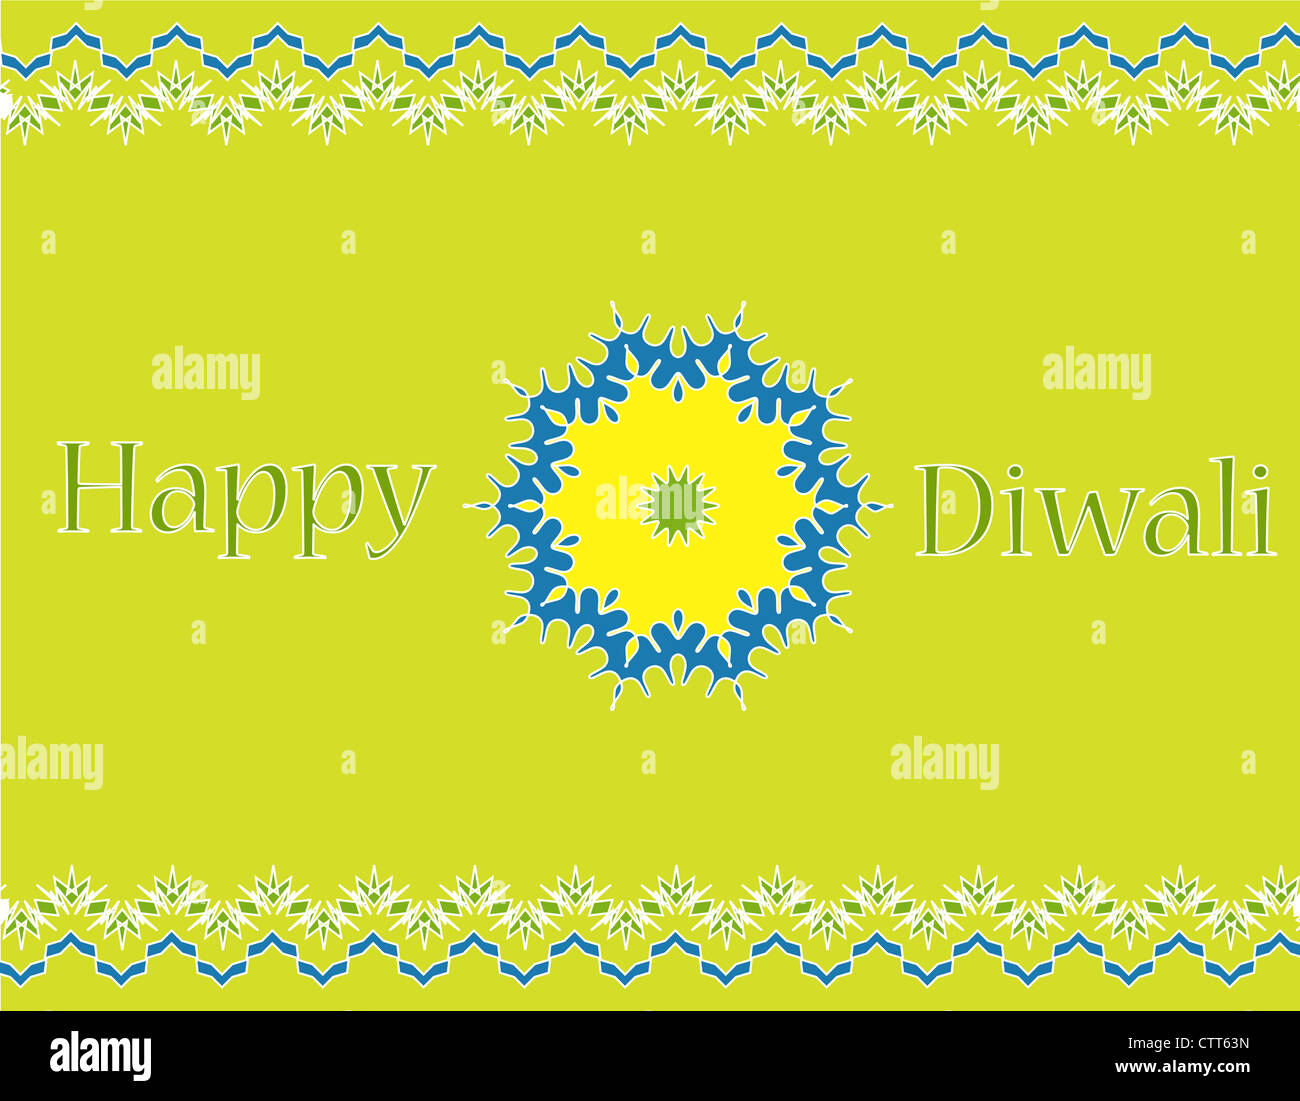 Colorful Indian festival Diwali greetings with decorative design Stock Photo